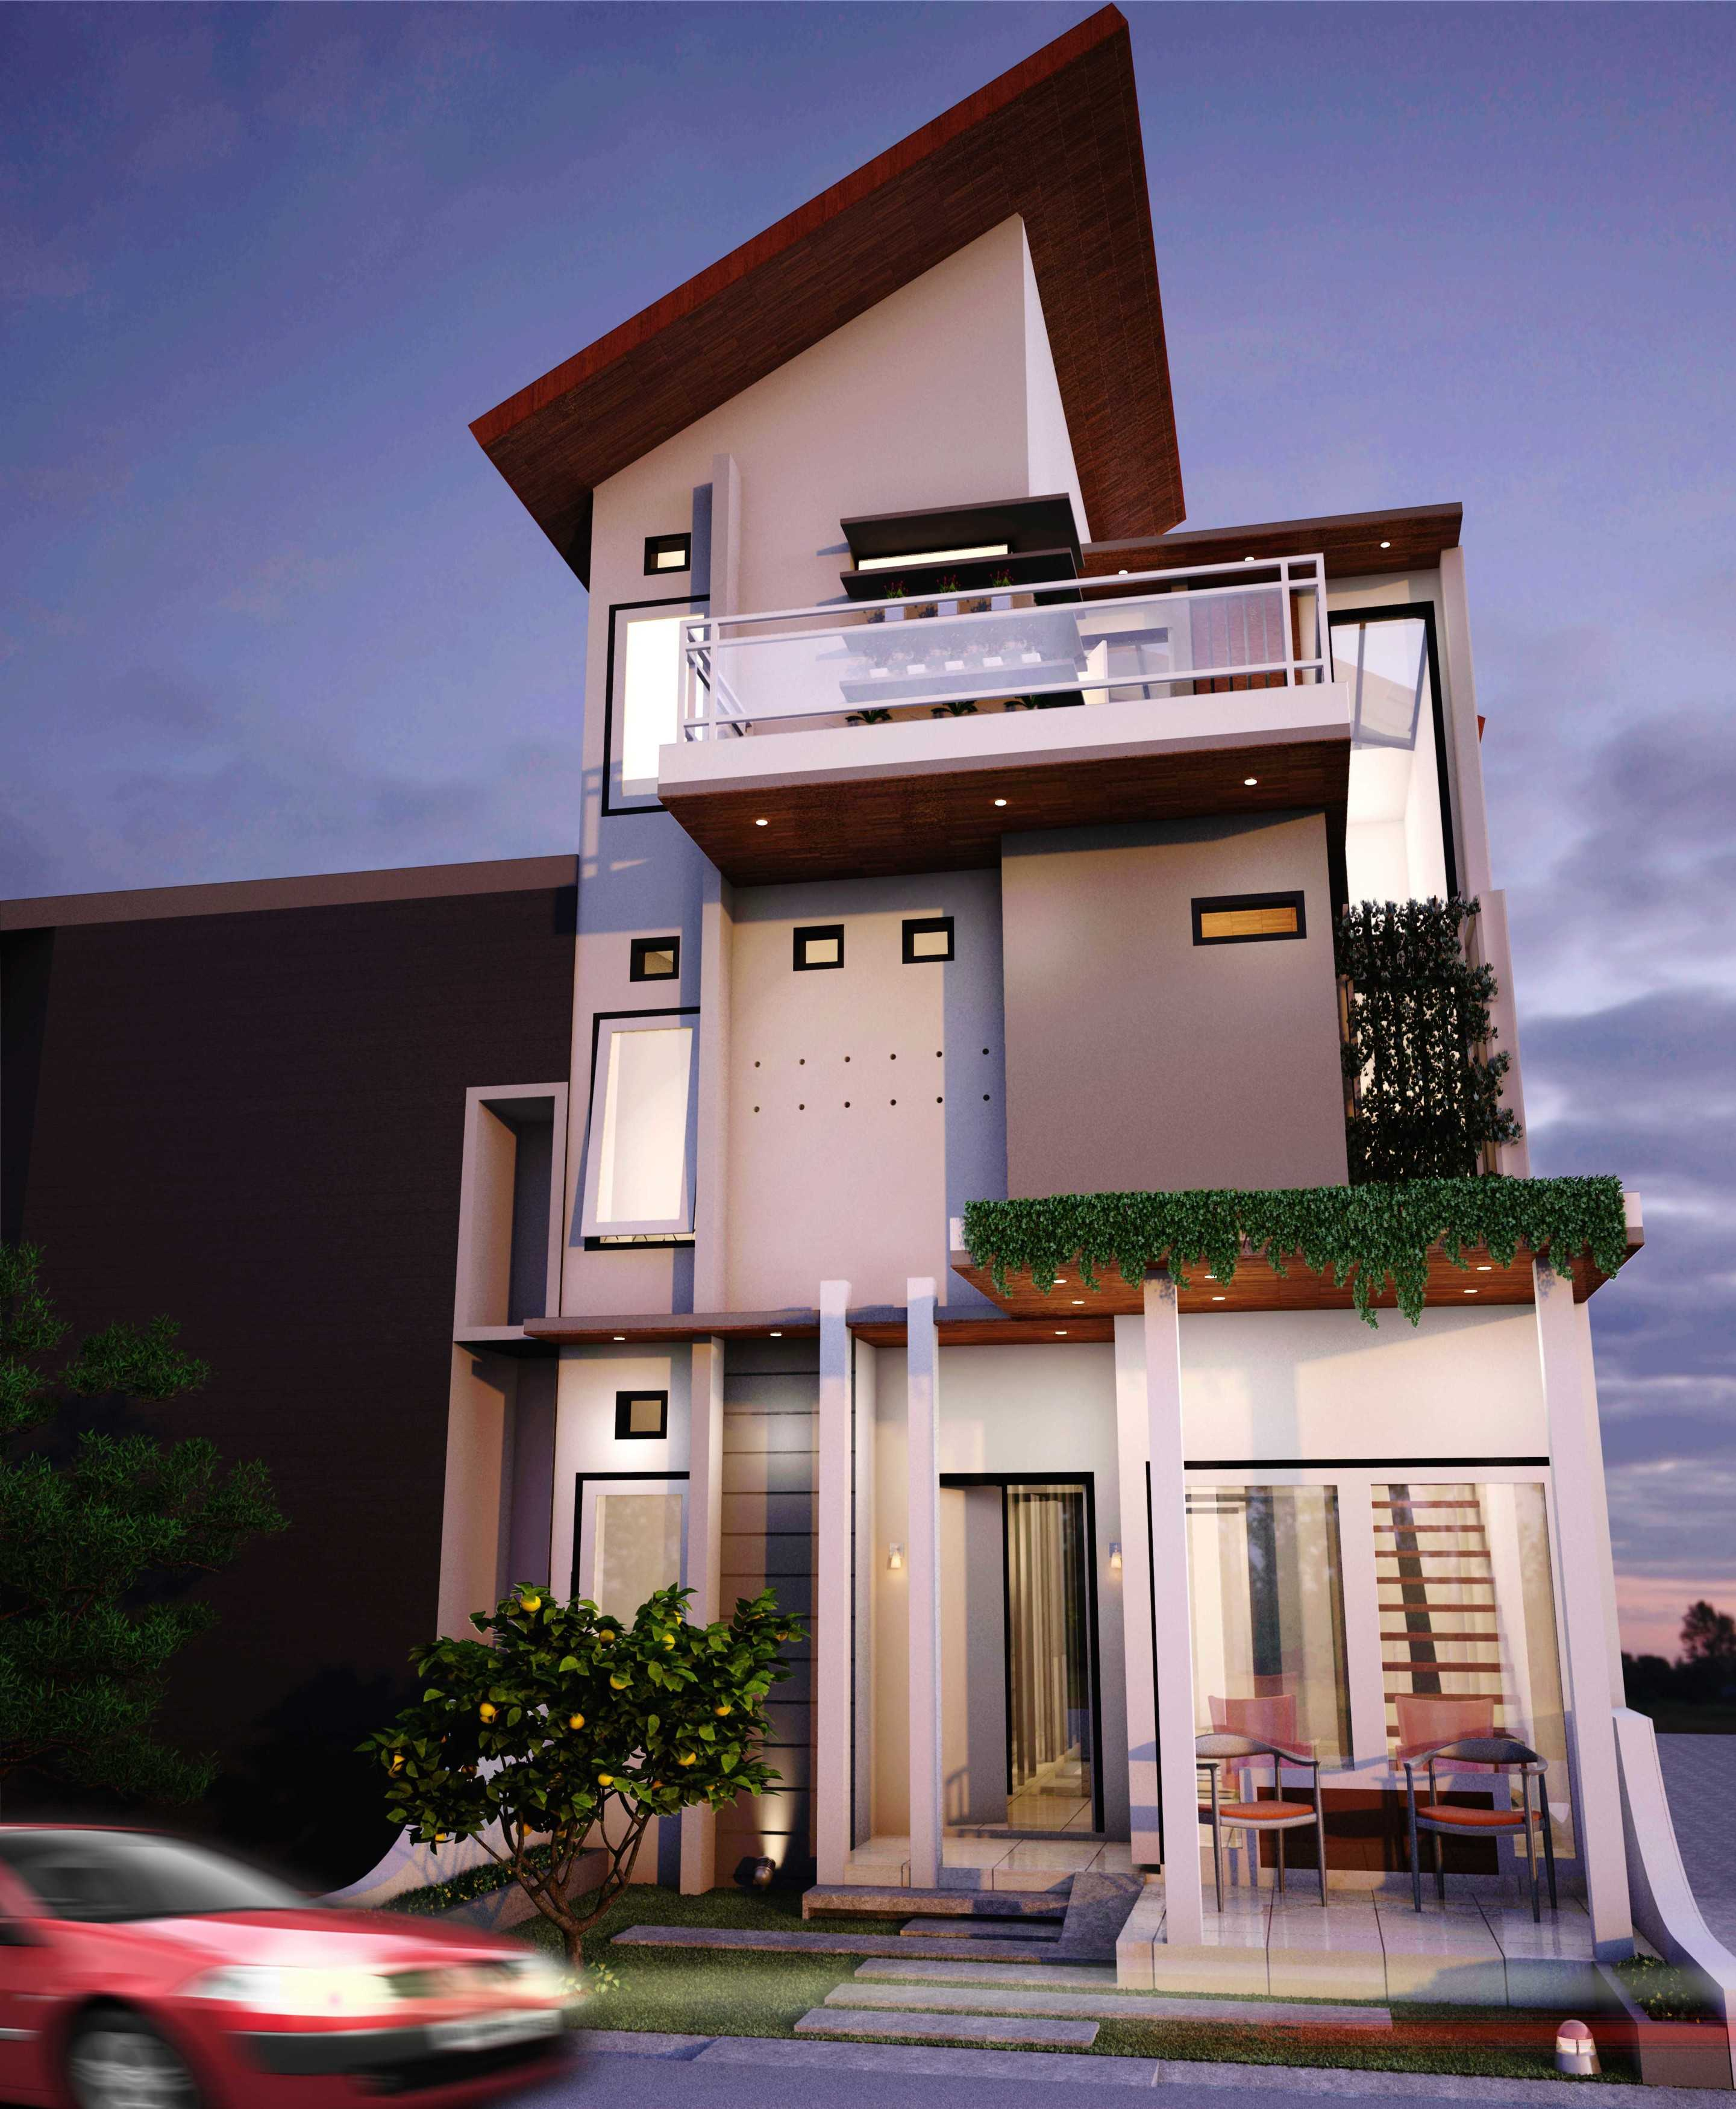 Parades Studio Oase City House Bandung-Indonesia Bandung-Indonesia Front View Modern  12346